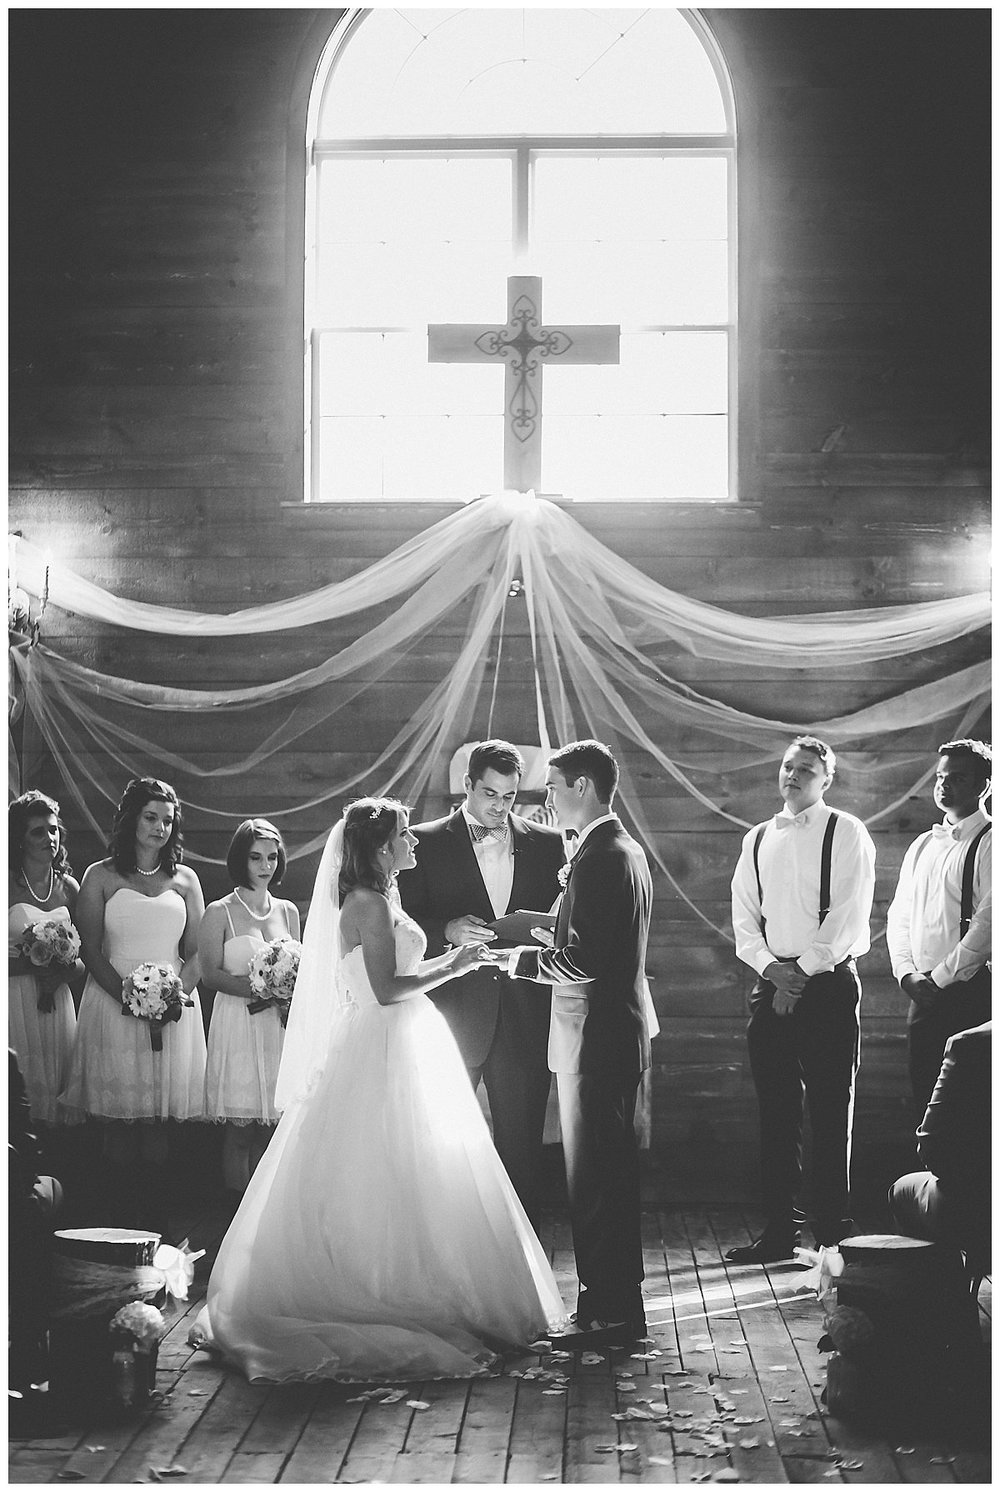 Knoxville / East Tennessee Wedding Photographer - Heather Faulkner Photography